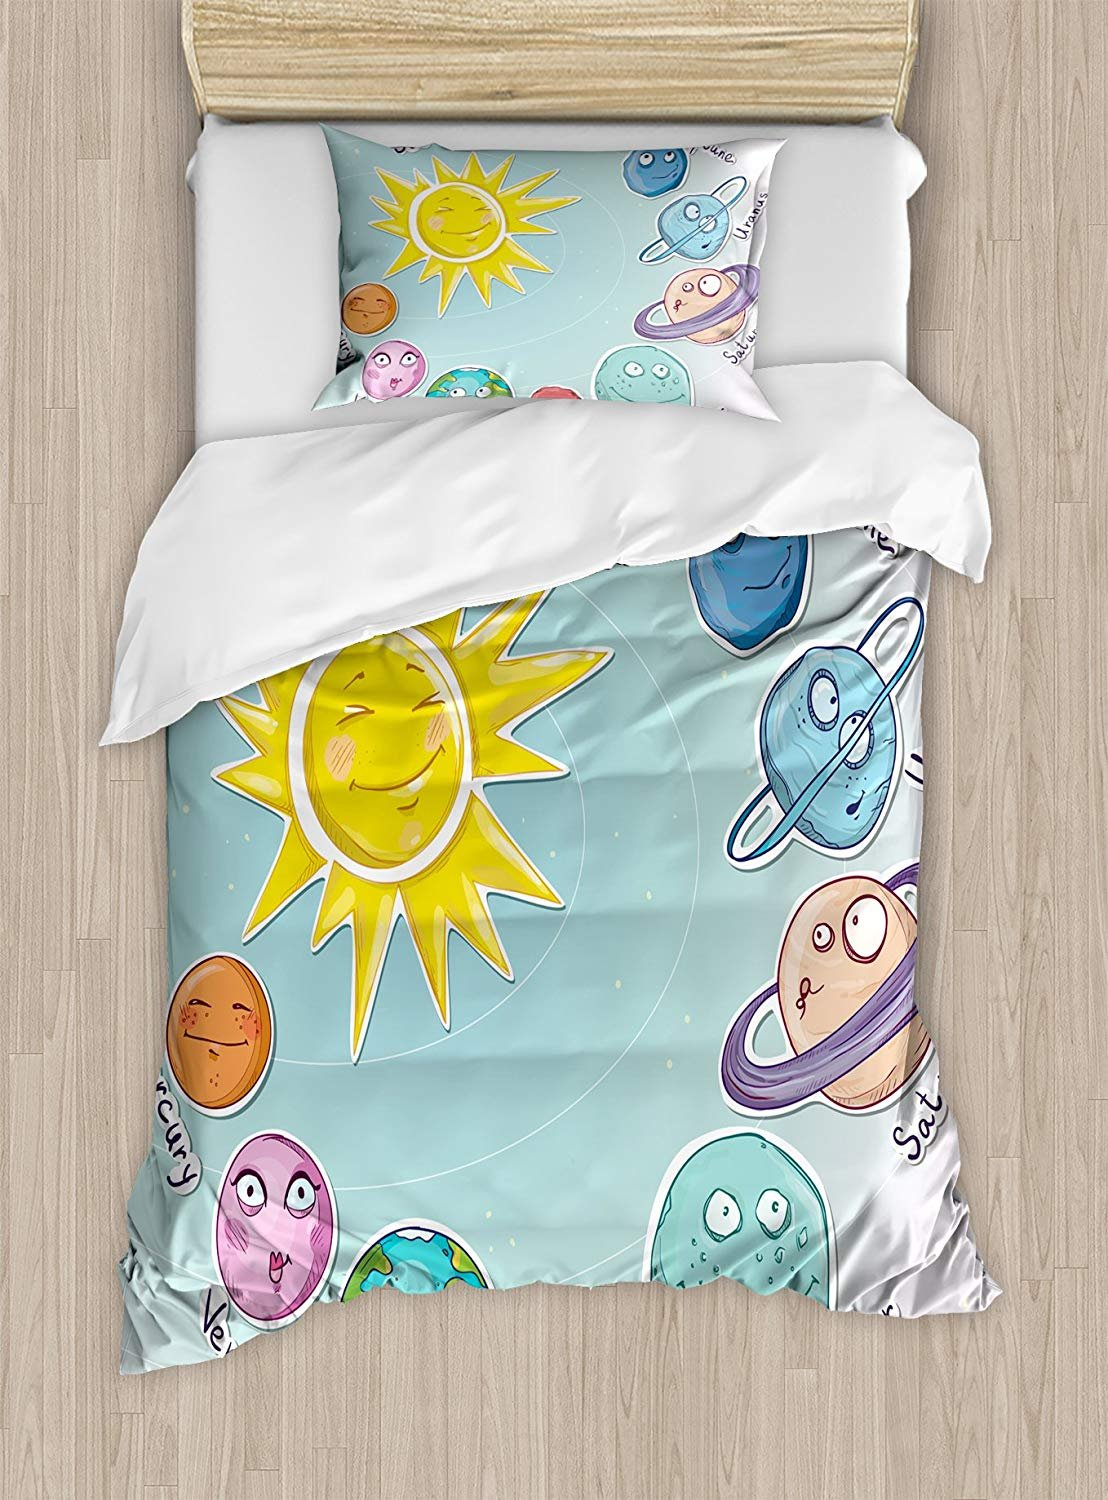 Space Duvet Cover Set,Cute Cartoon Sun and Planets of Solar System Fun Celestial Chart Baby Kids Nursery Theme,Cosy House Collection 4 Piece Bedding Sets